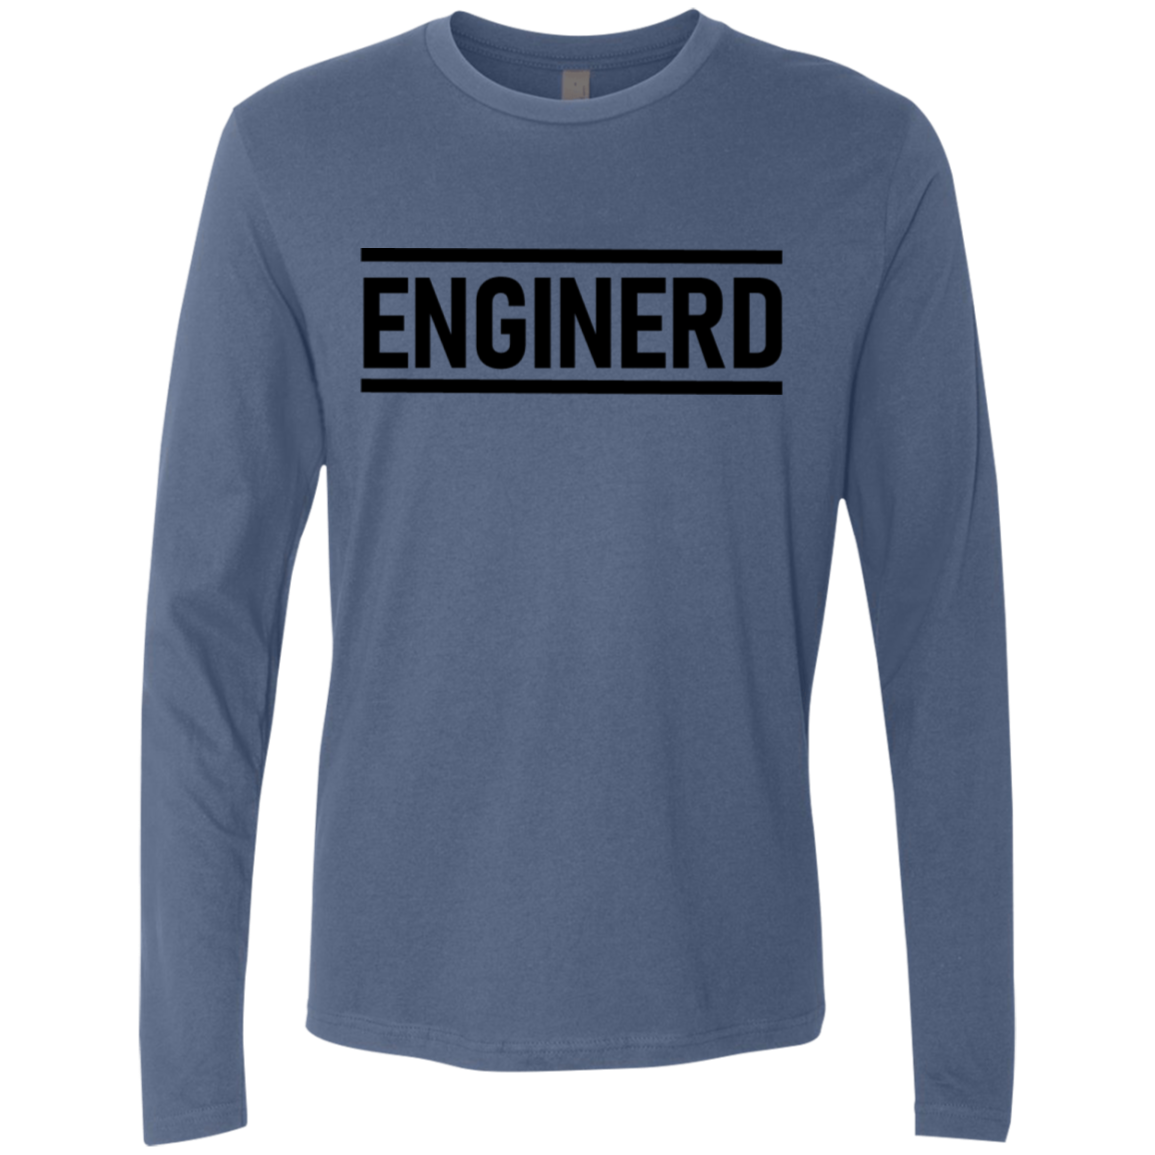 Enginerd Men's Long Sleeve Tee